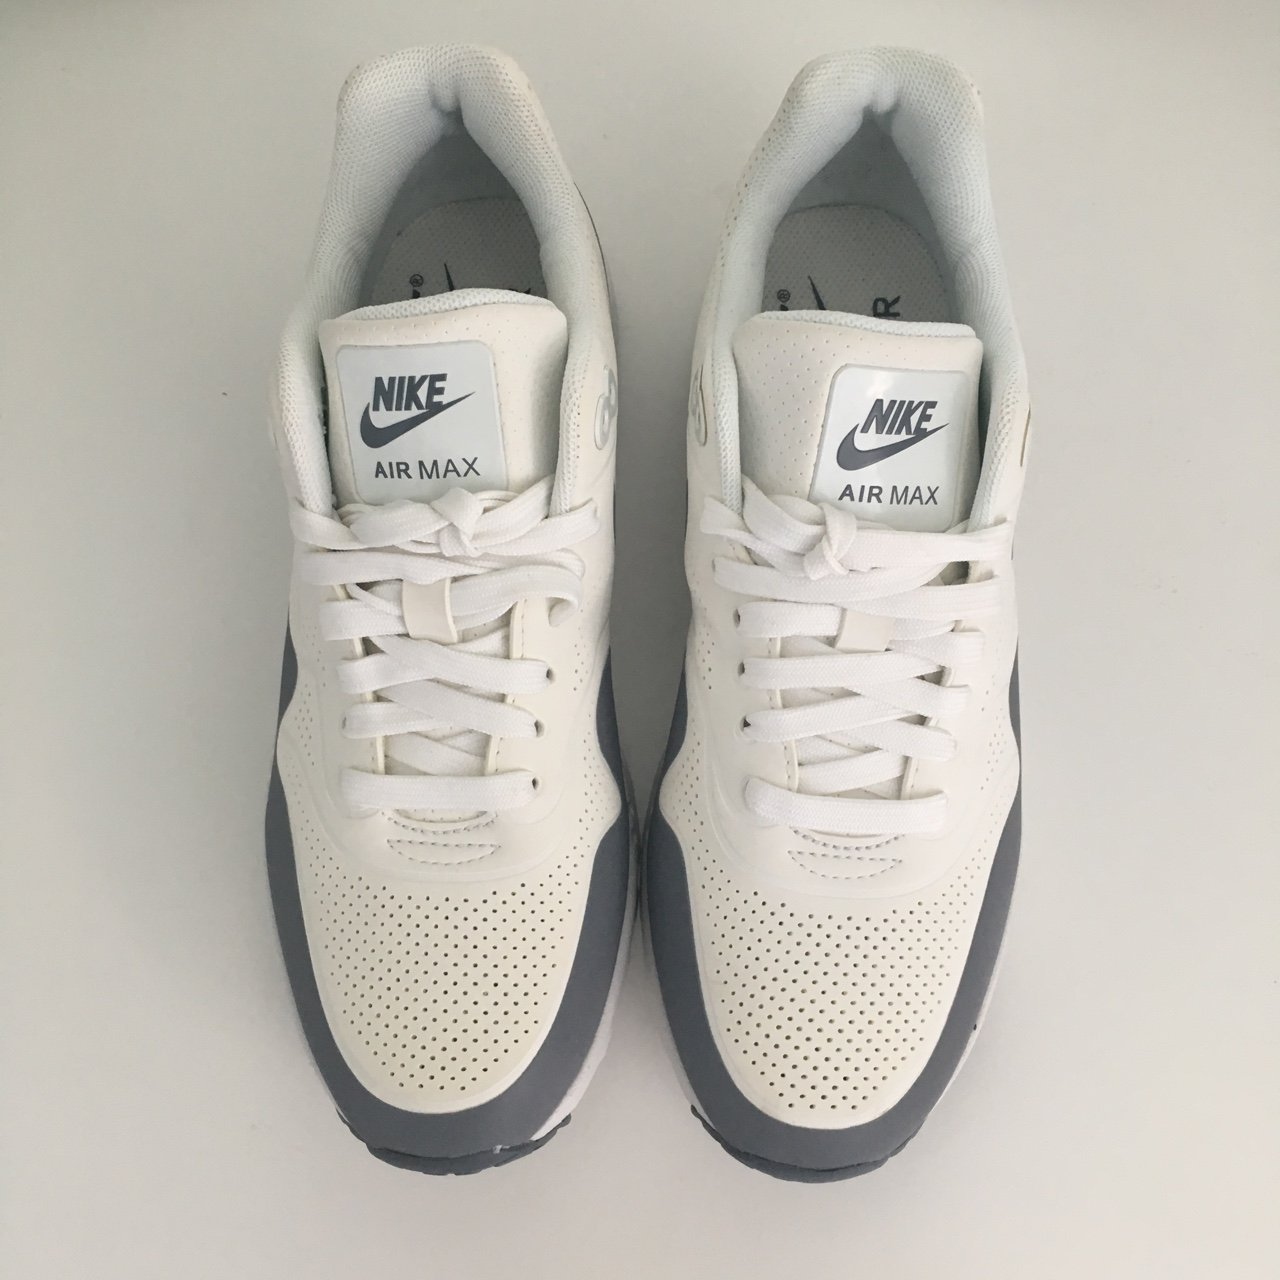 save off 4be87 522fe mima69. last year. London, UK. Nike air max 1 ultra moire ...